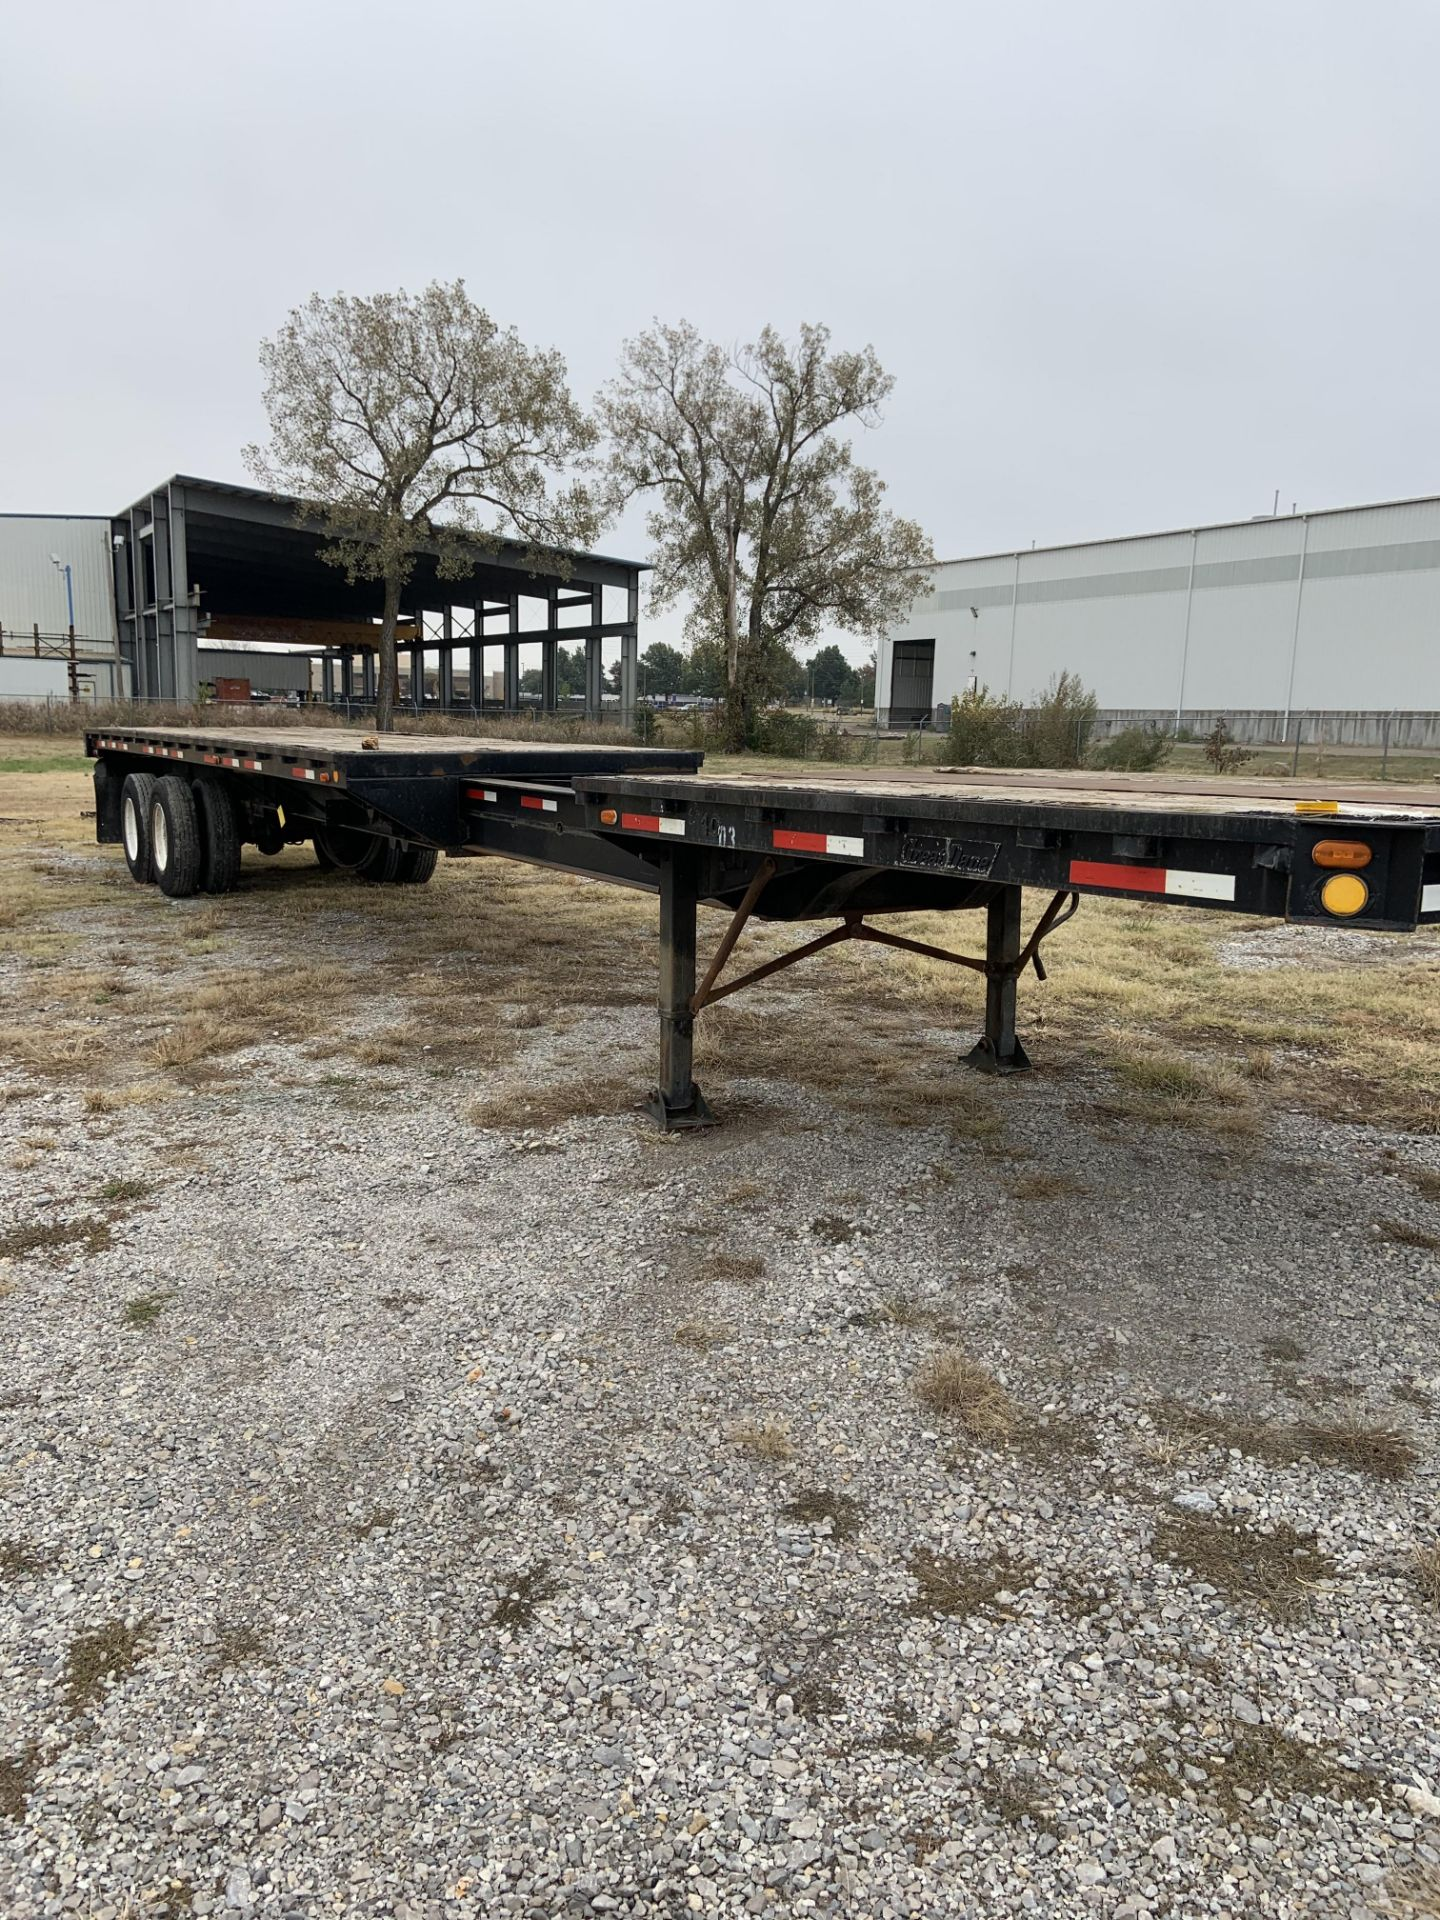 Lot 11 - 1979 GREAT DANE 60' STRETCH TRAILER, VIN: M22960